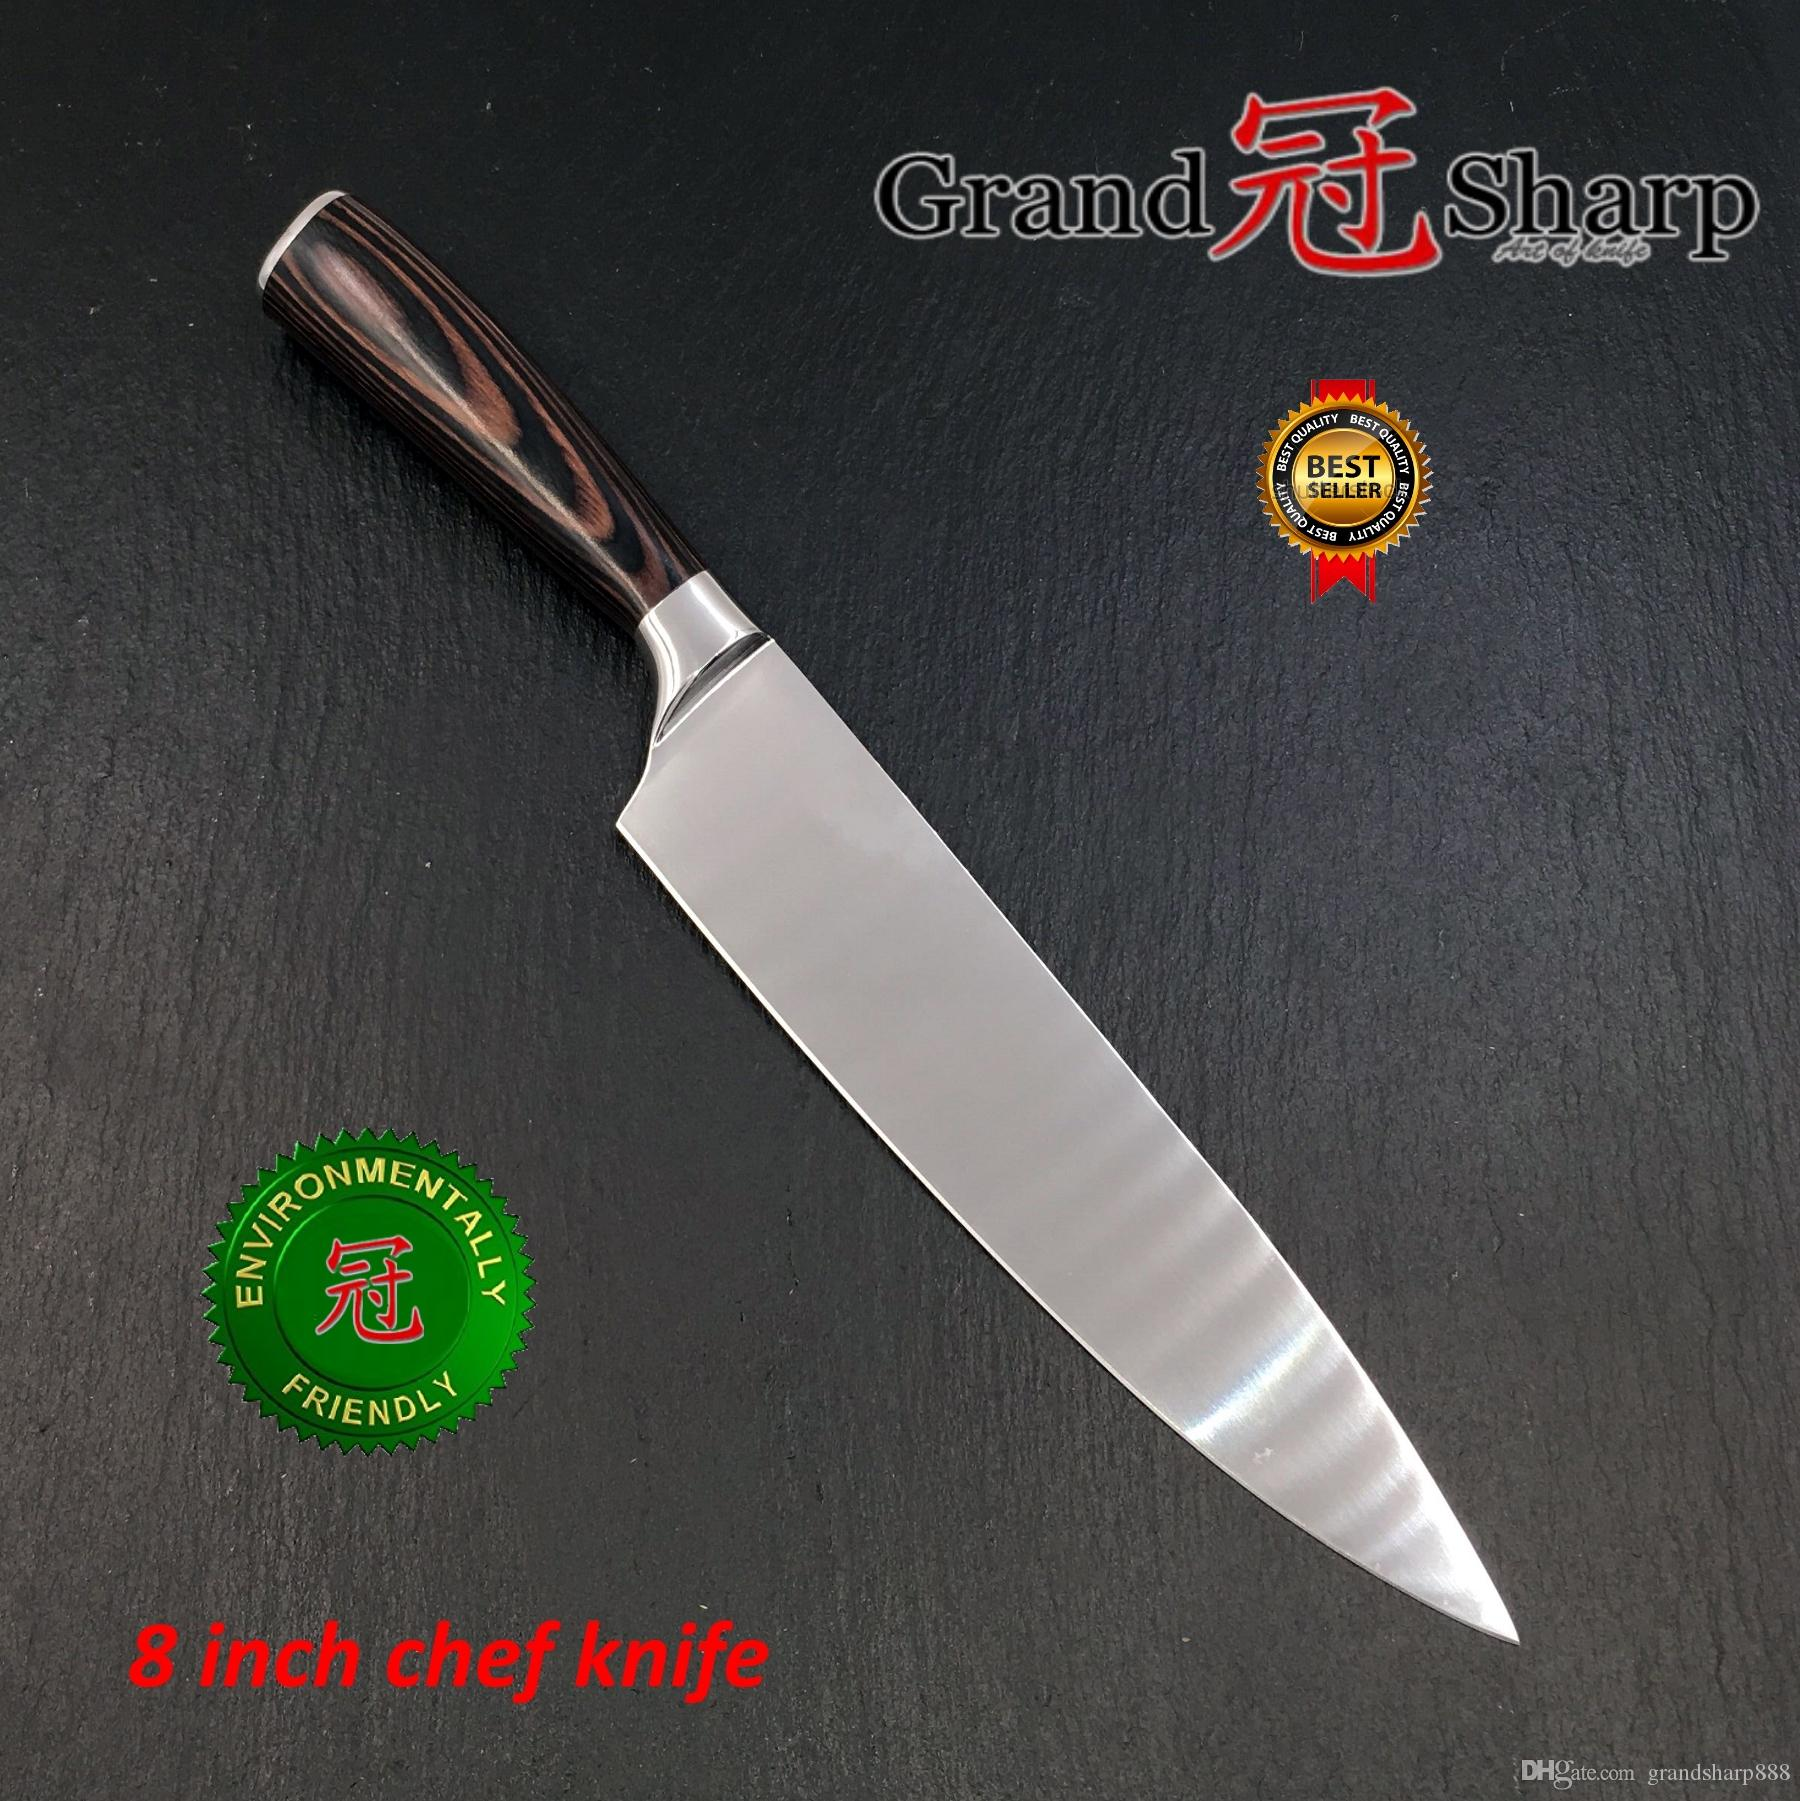 reviews best euroline you knife and collection knives chef rated need kramer tools essential kitchen cooking top cutlery